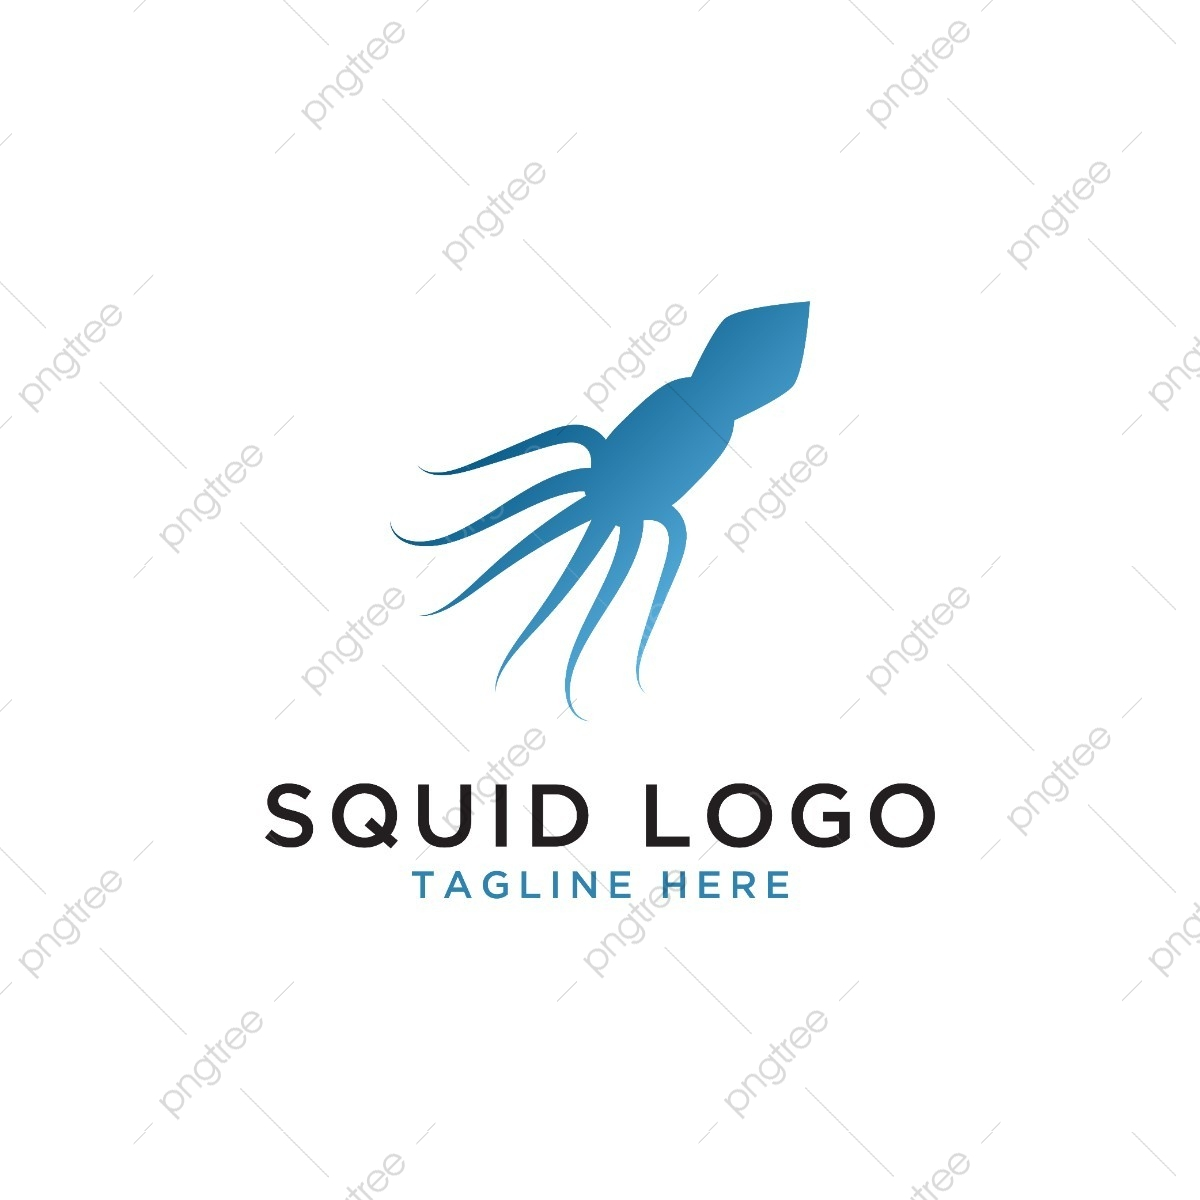 squid logo design template template for free download on pngtree squid logo design template template for